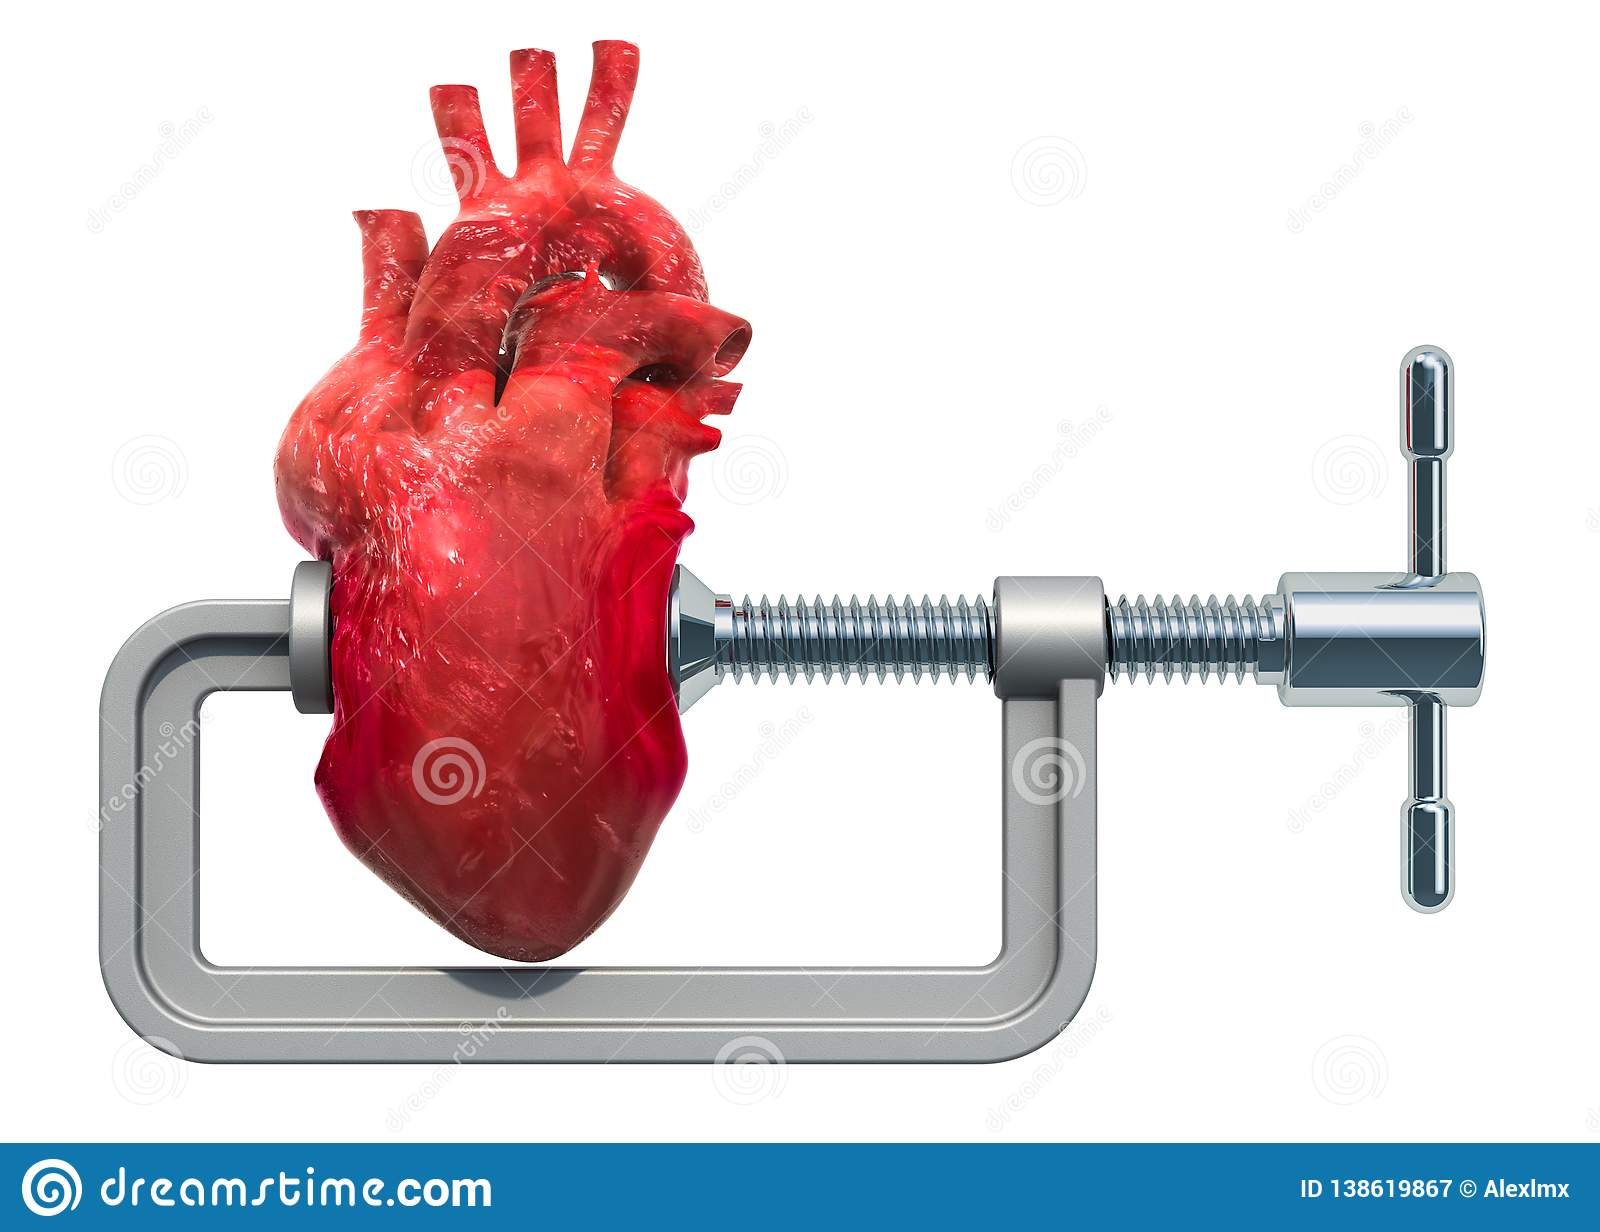 Heart attack, heart disease concept. Vise with human heart. 3D rendering